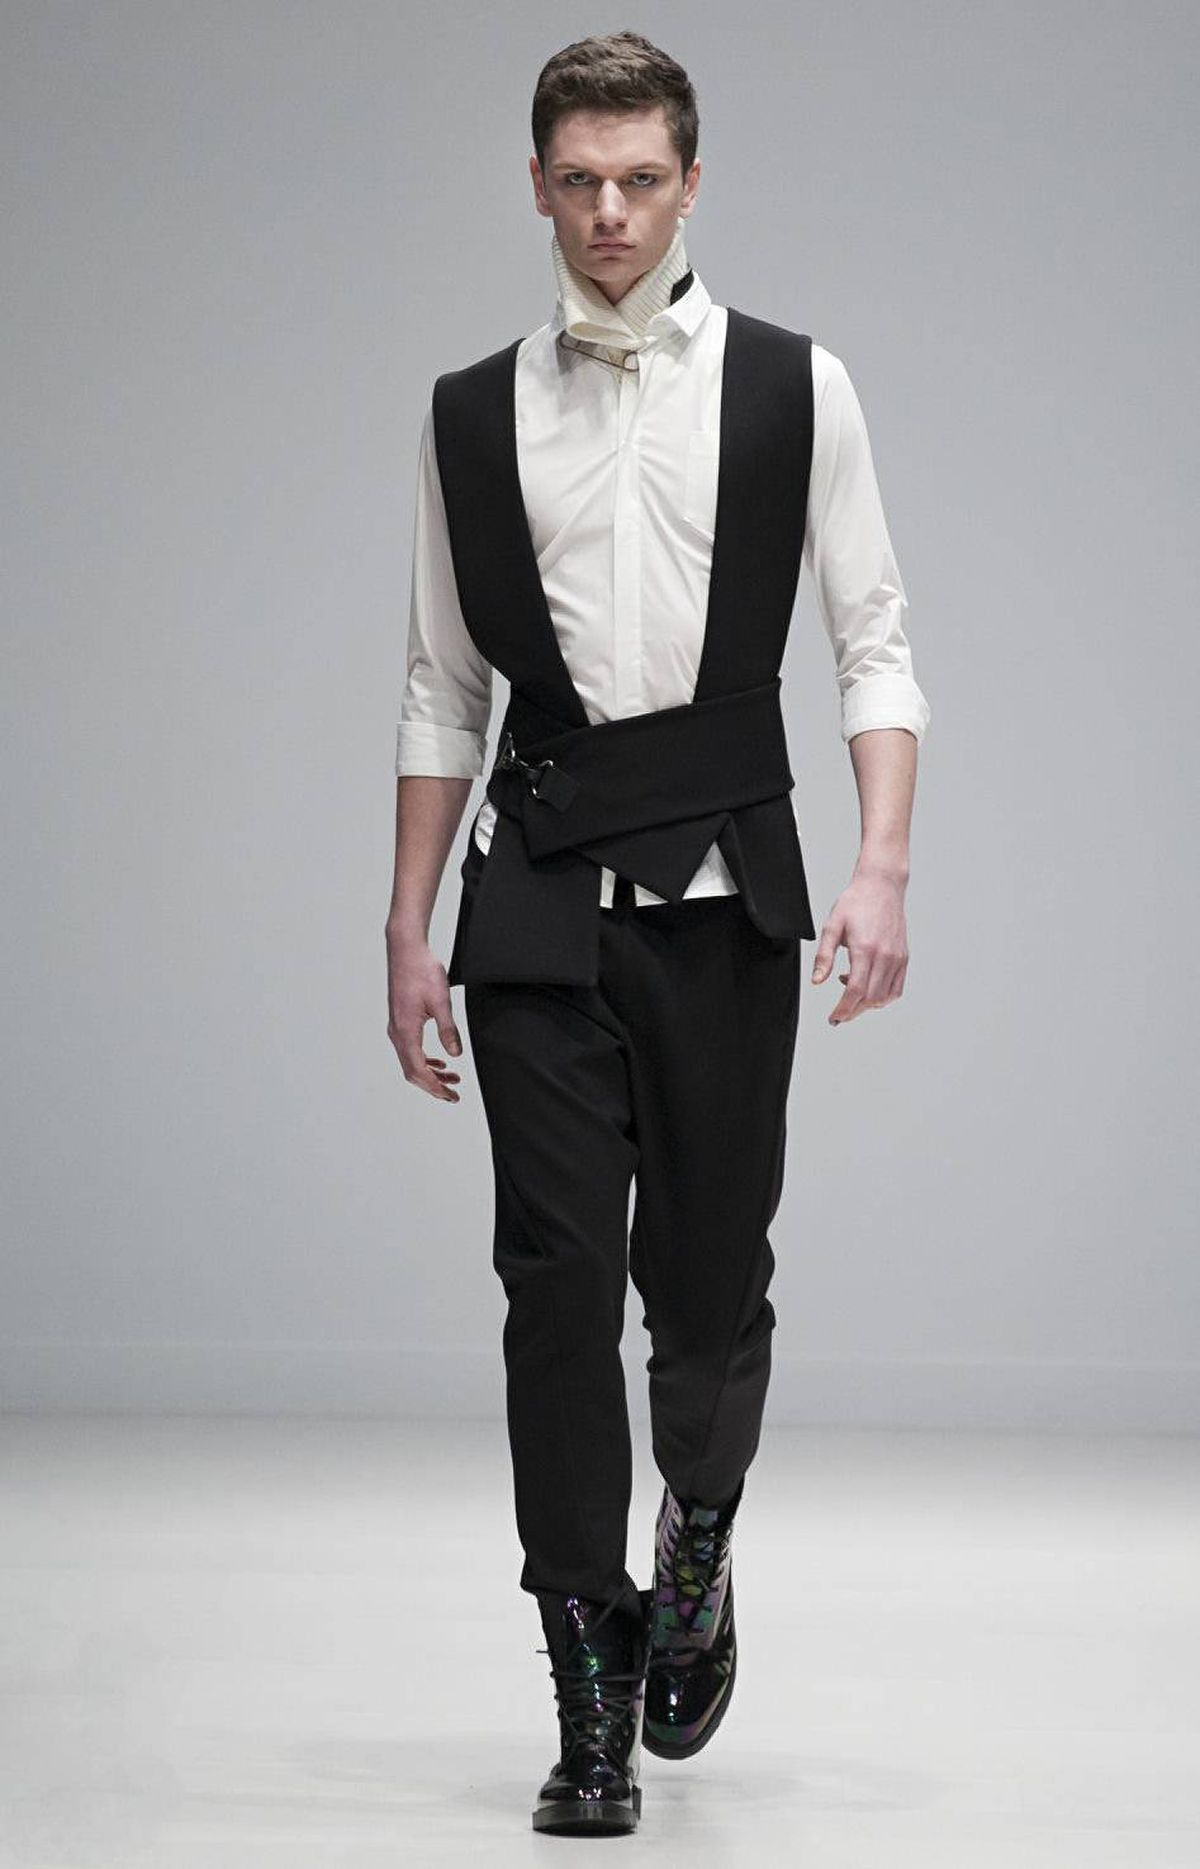 Previously shown alongside its sister label Greta Constantine, Kirk Pickersgill and Stephen Wong presented a men's wear collection that held its ground. Focusing on the idea of armour and protection, the line incorporated boiled wool, heavy knit sweaters and light touches of bondage alongside their signature draped cottons.